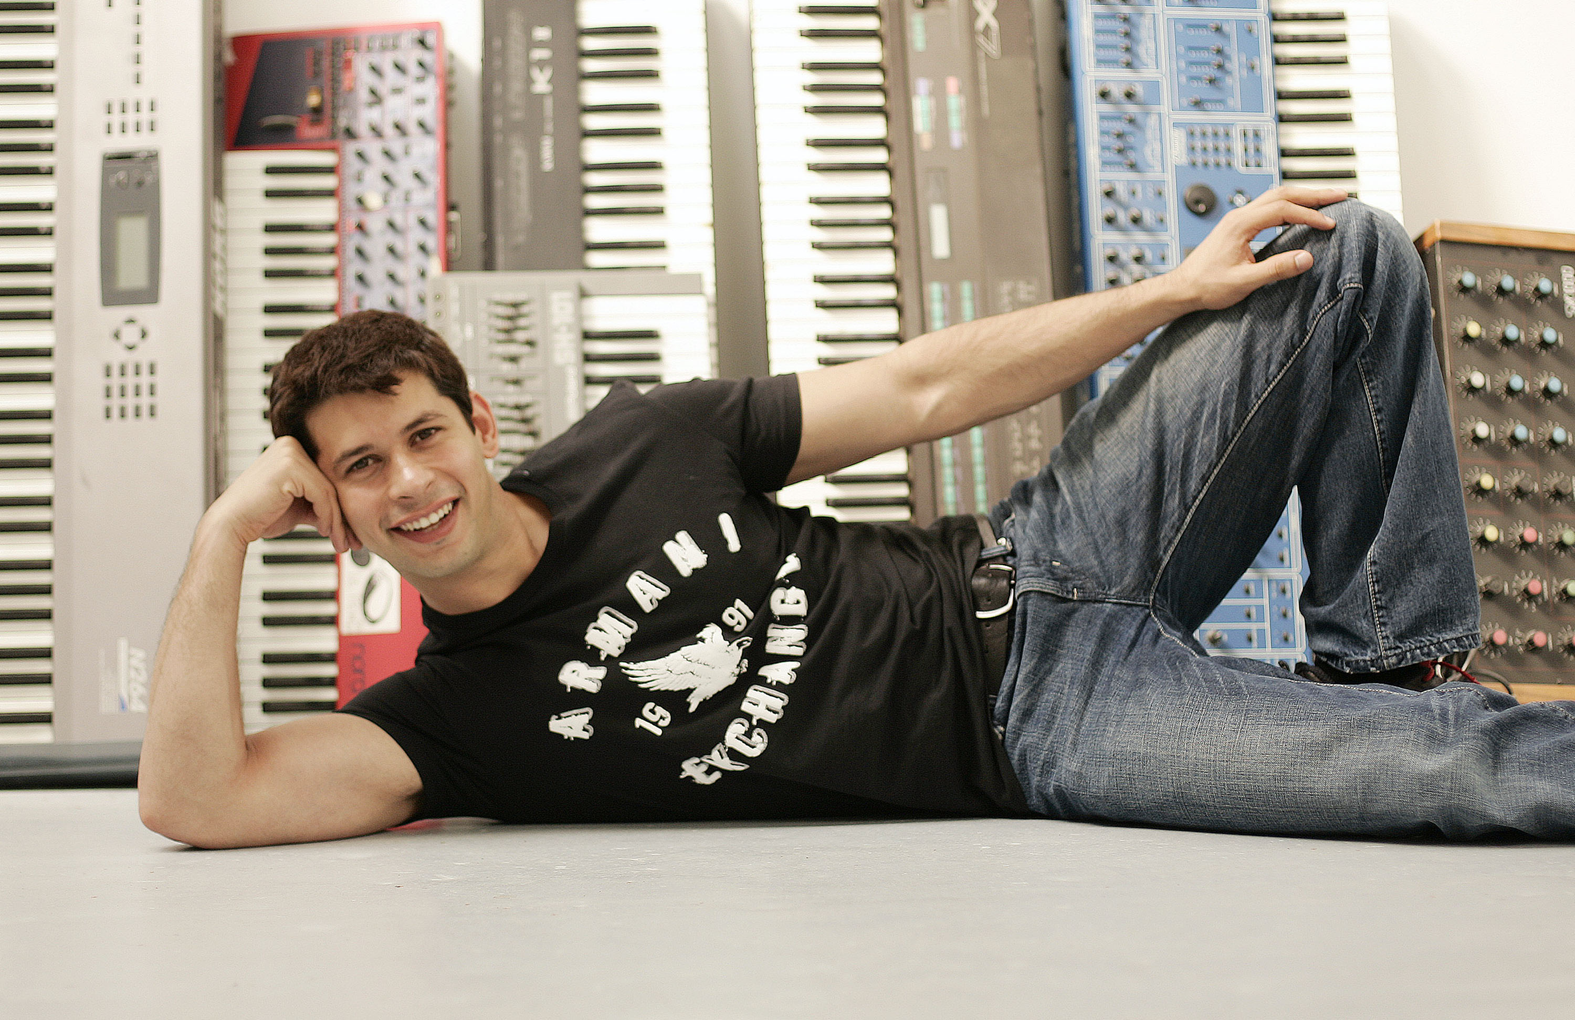 public://images/exec-life-images/2015/04/17/Shayan Floor Lying Down.png